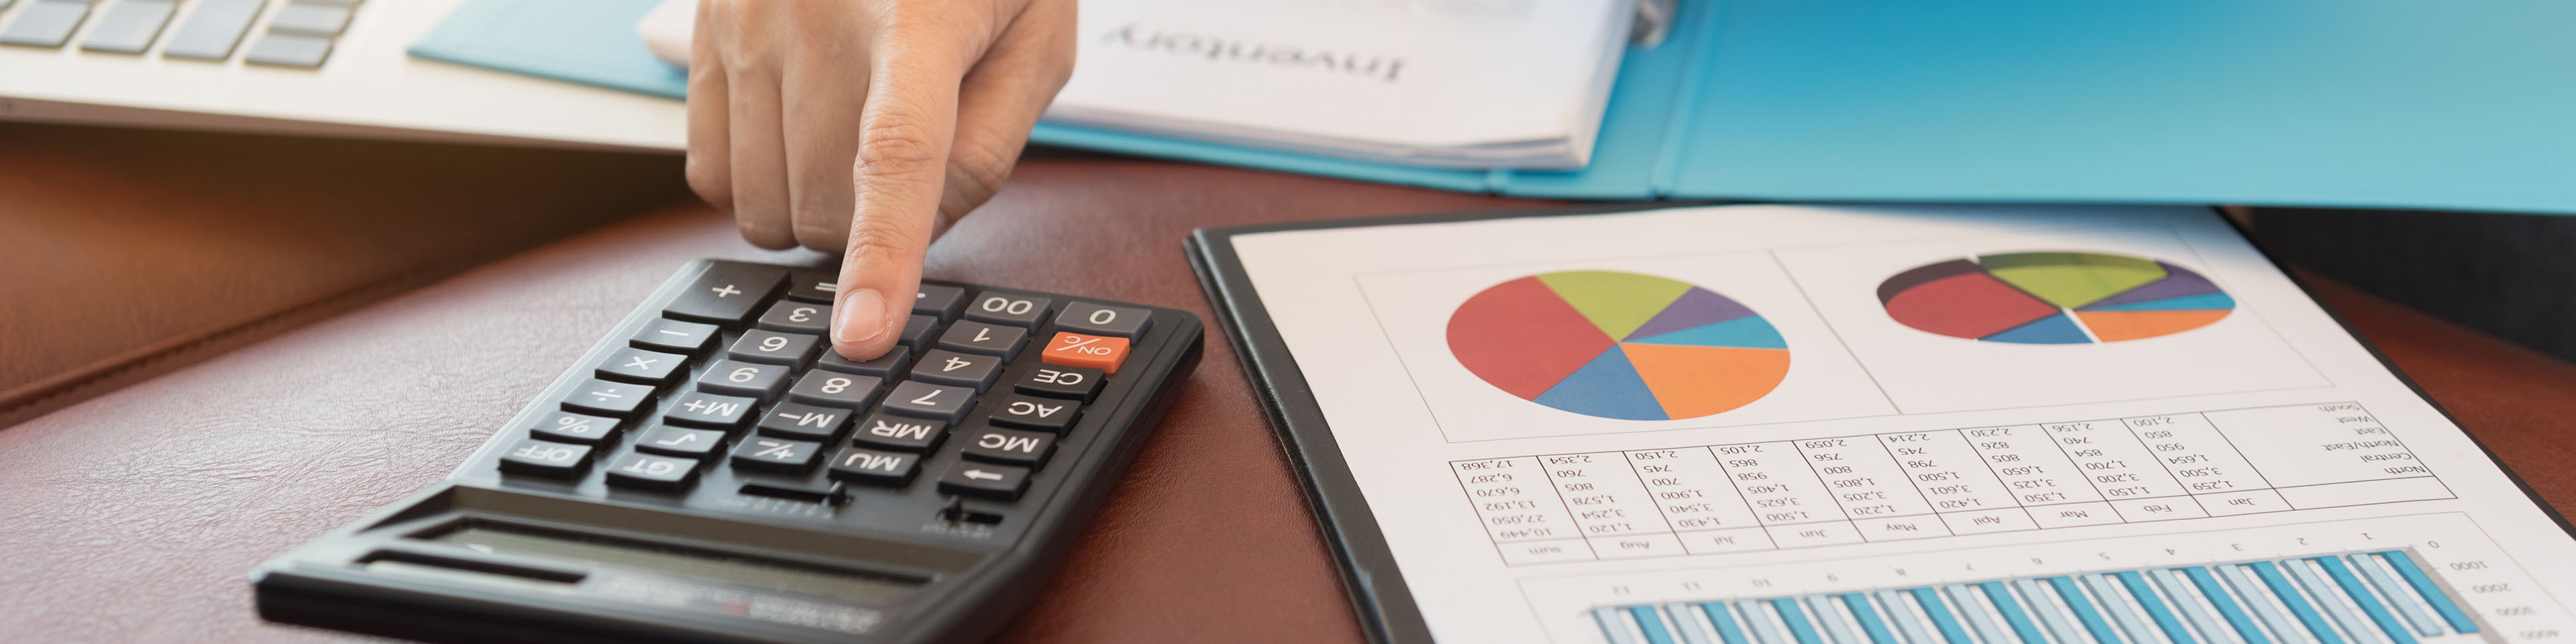 Accounting-financial-business